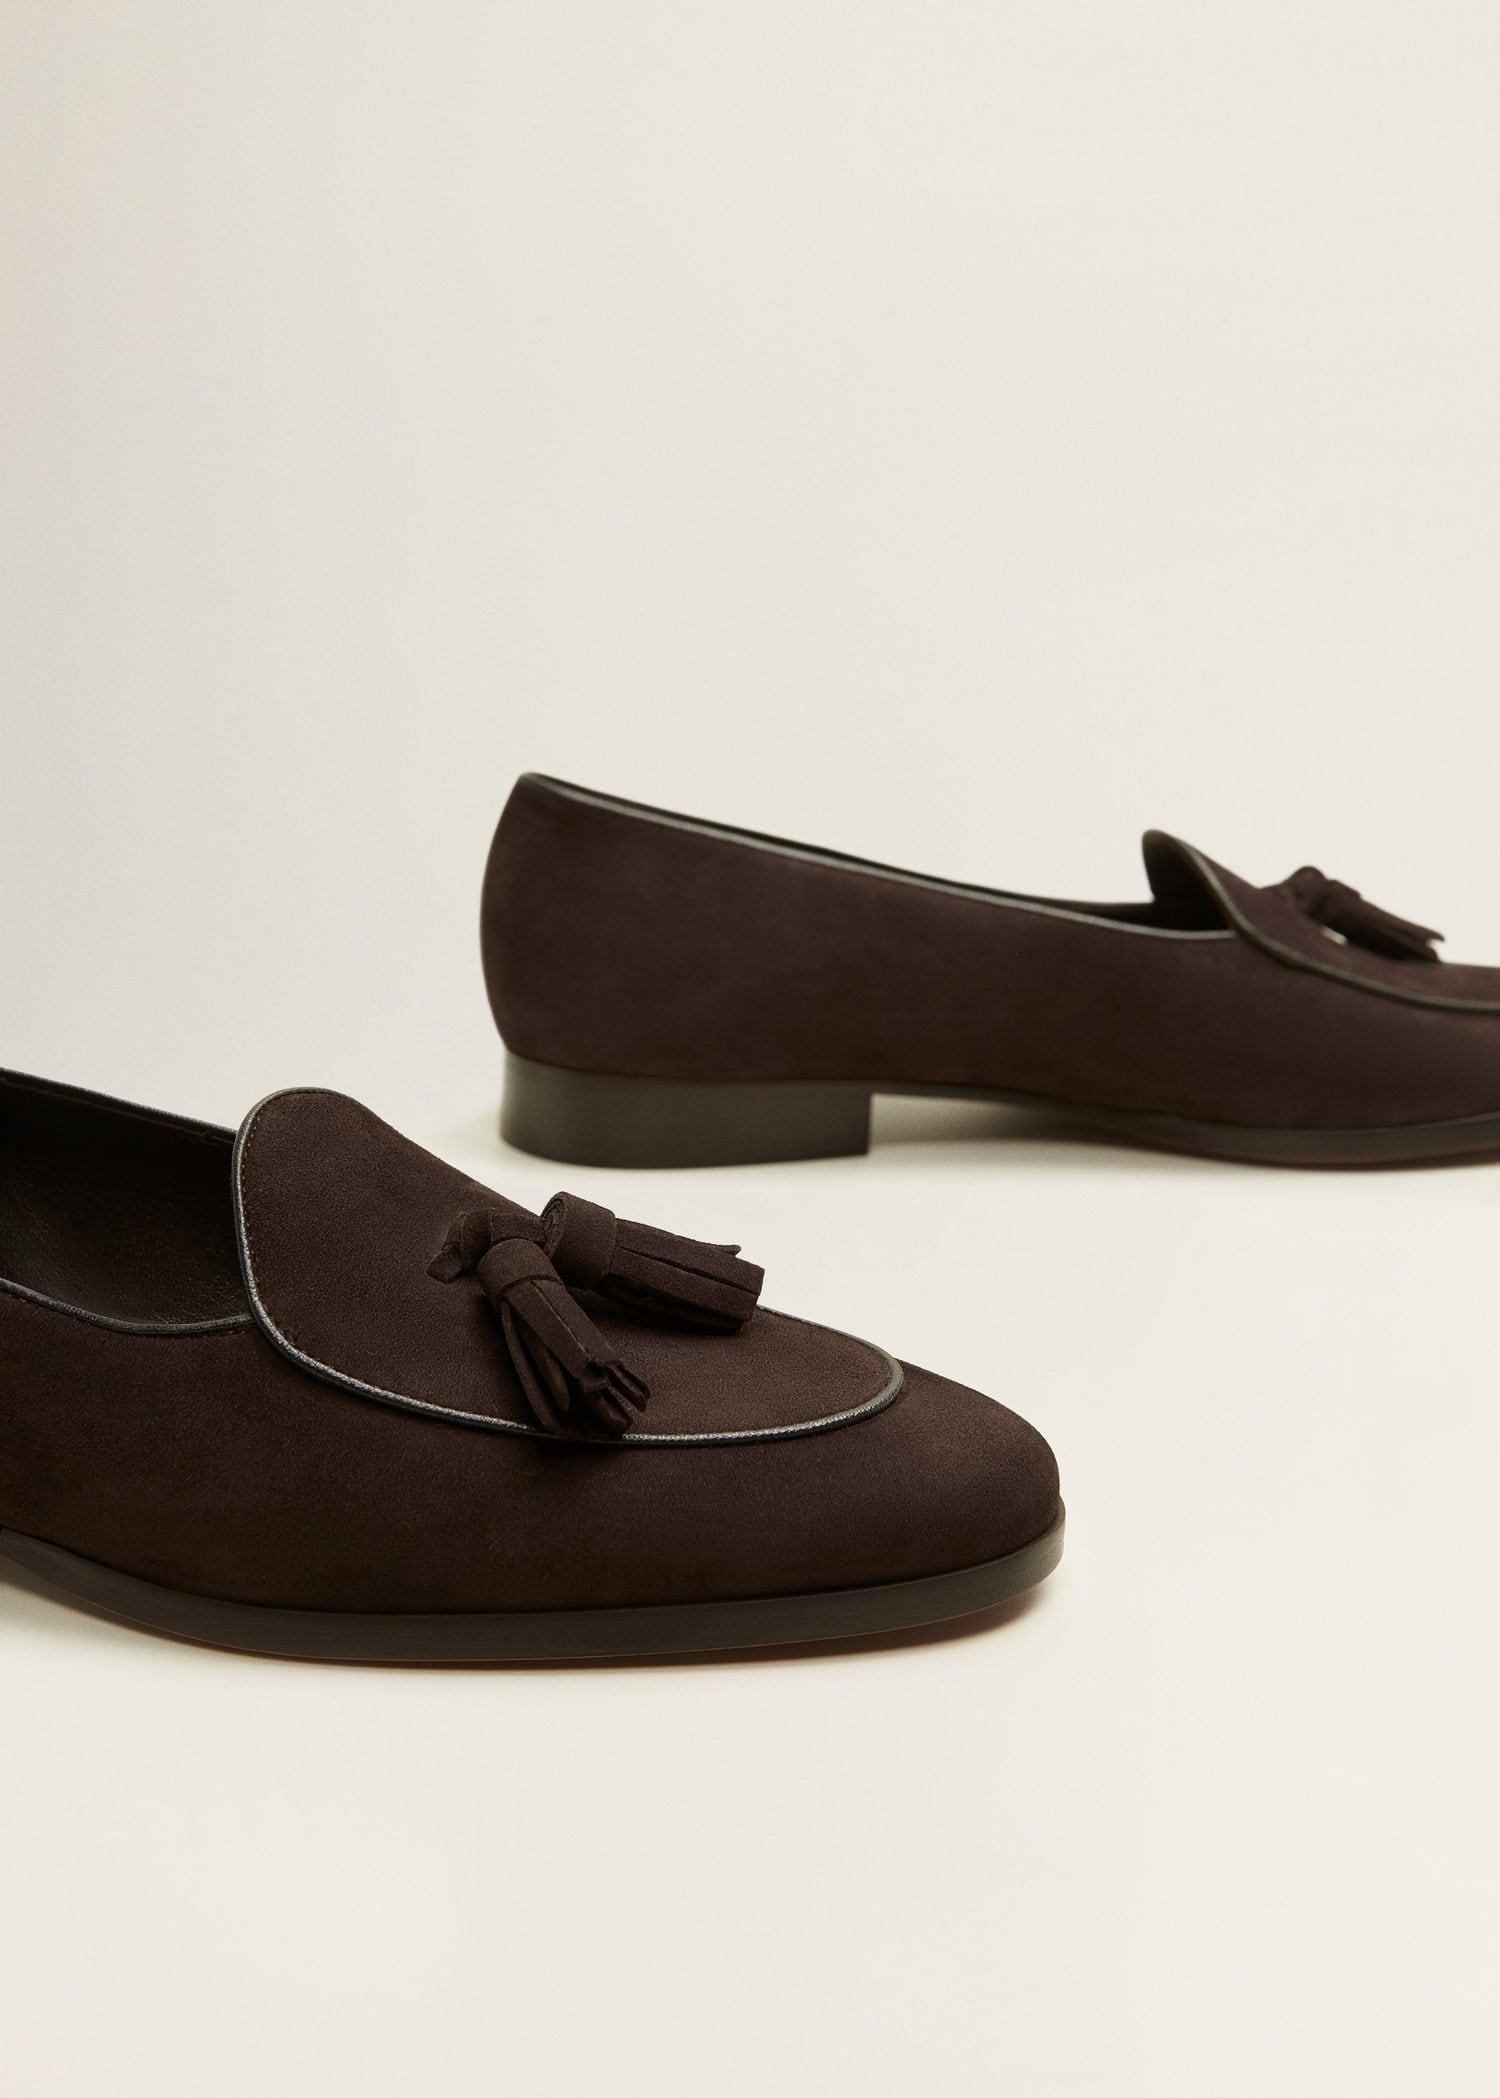 121a6dbe365 Lyst - Mango Tassel Suede Loafers in Brown for Men